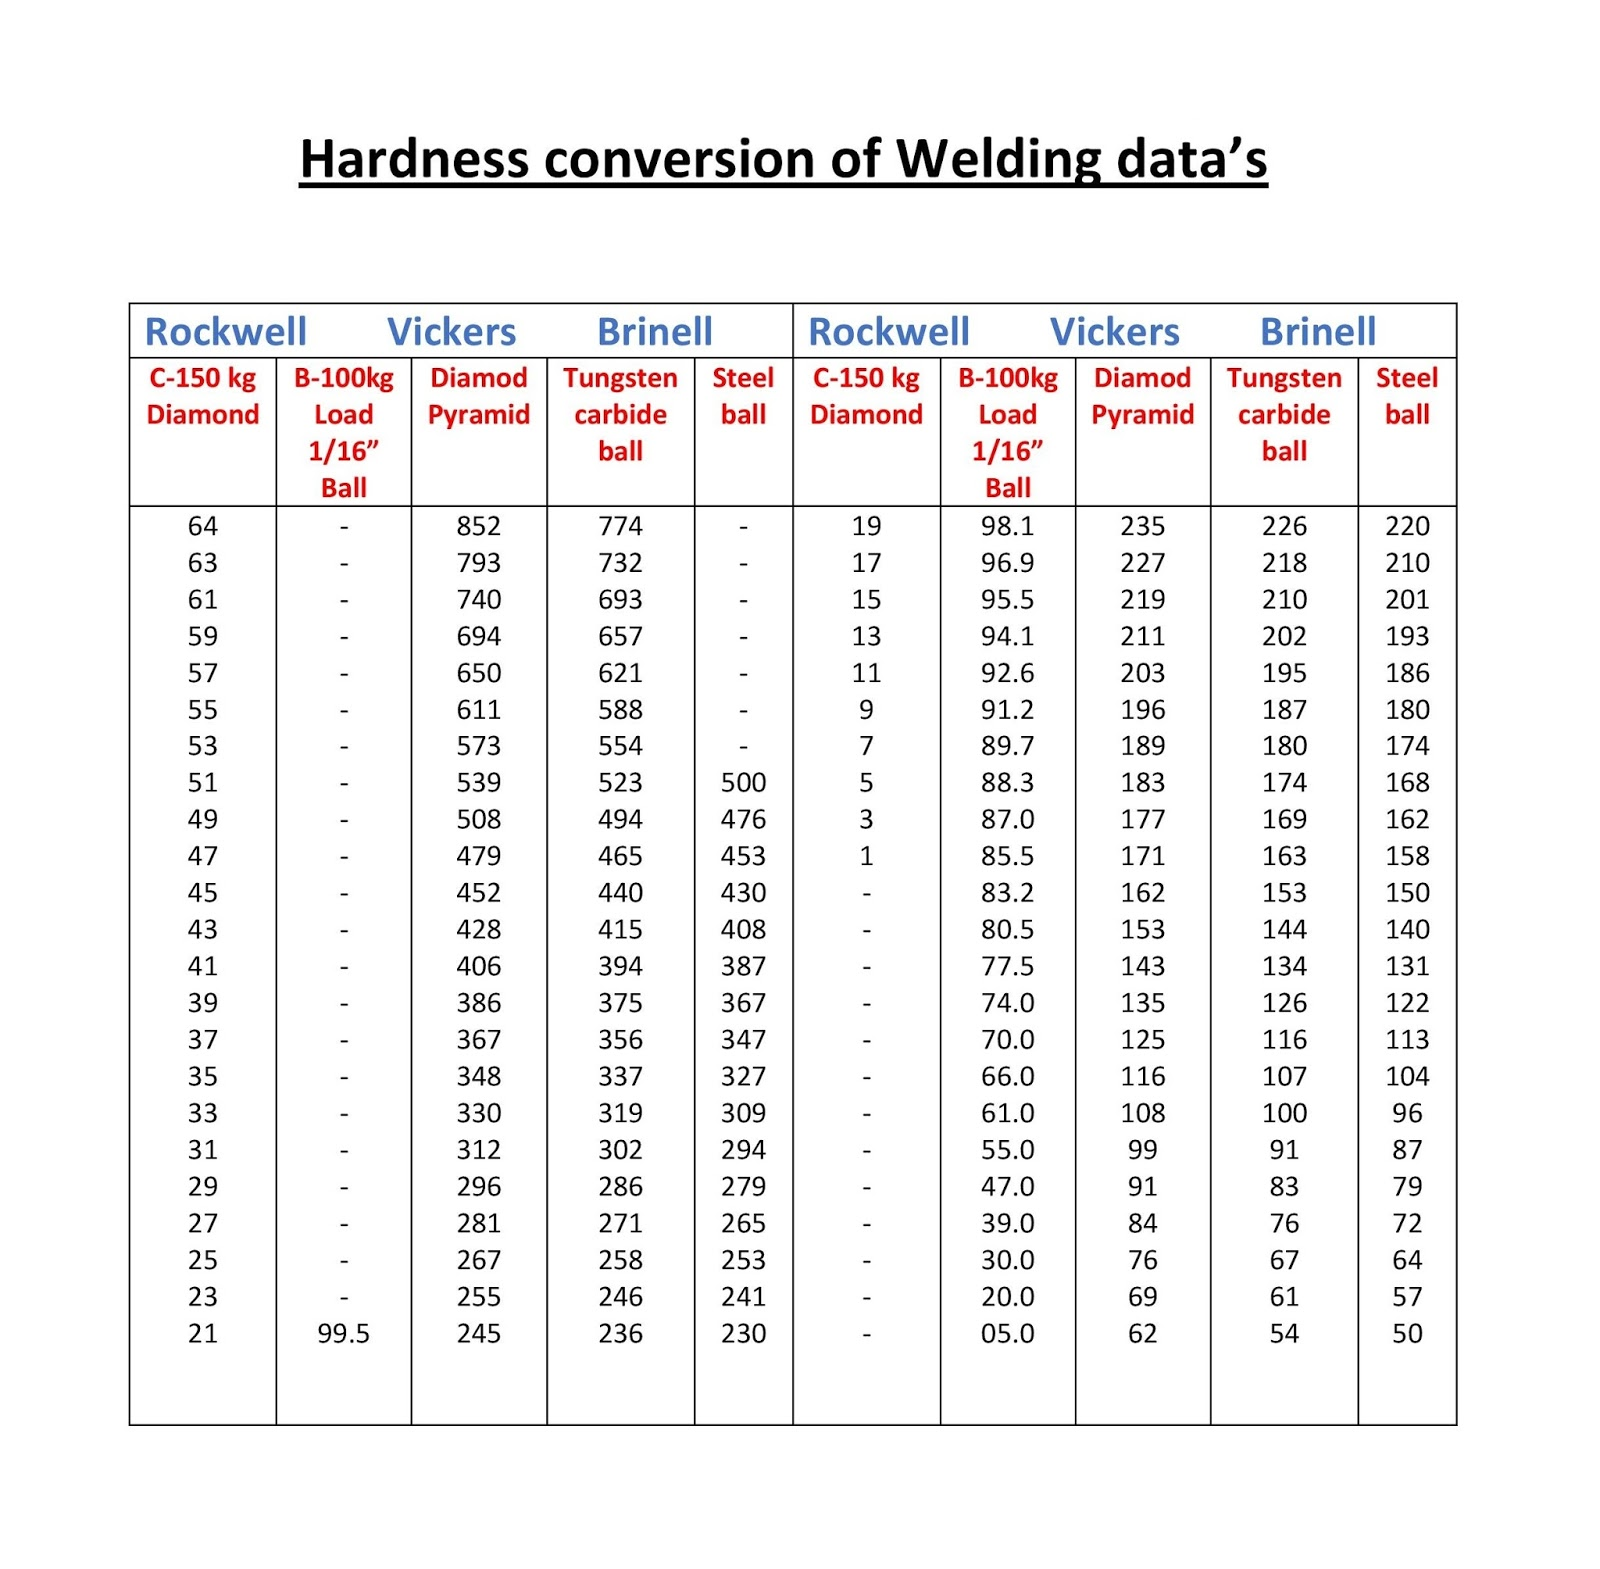 Welding hardfacing cladding and cutting of metals 2015 hardness conversion of welding datas nvjuhfo Choice Image